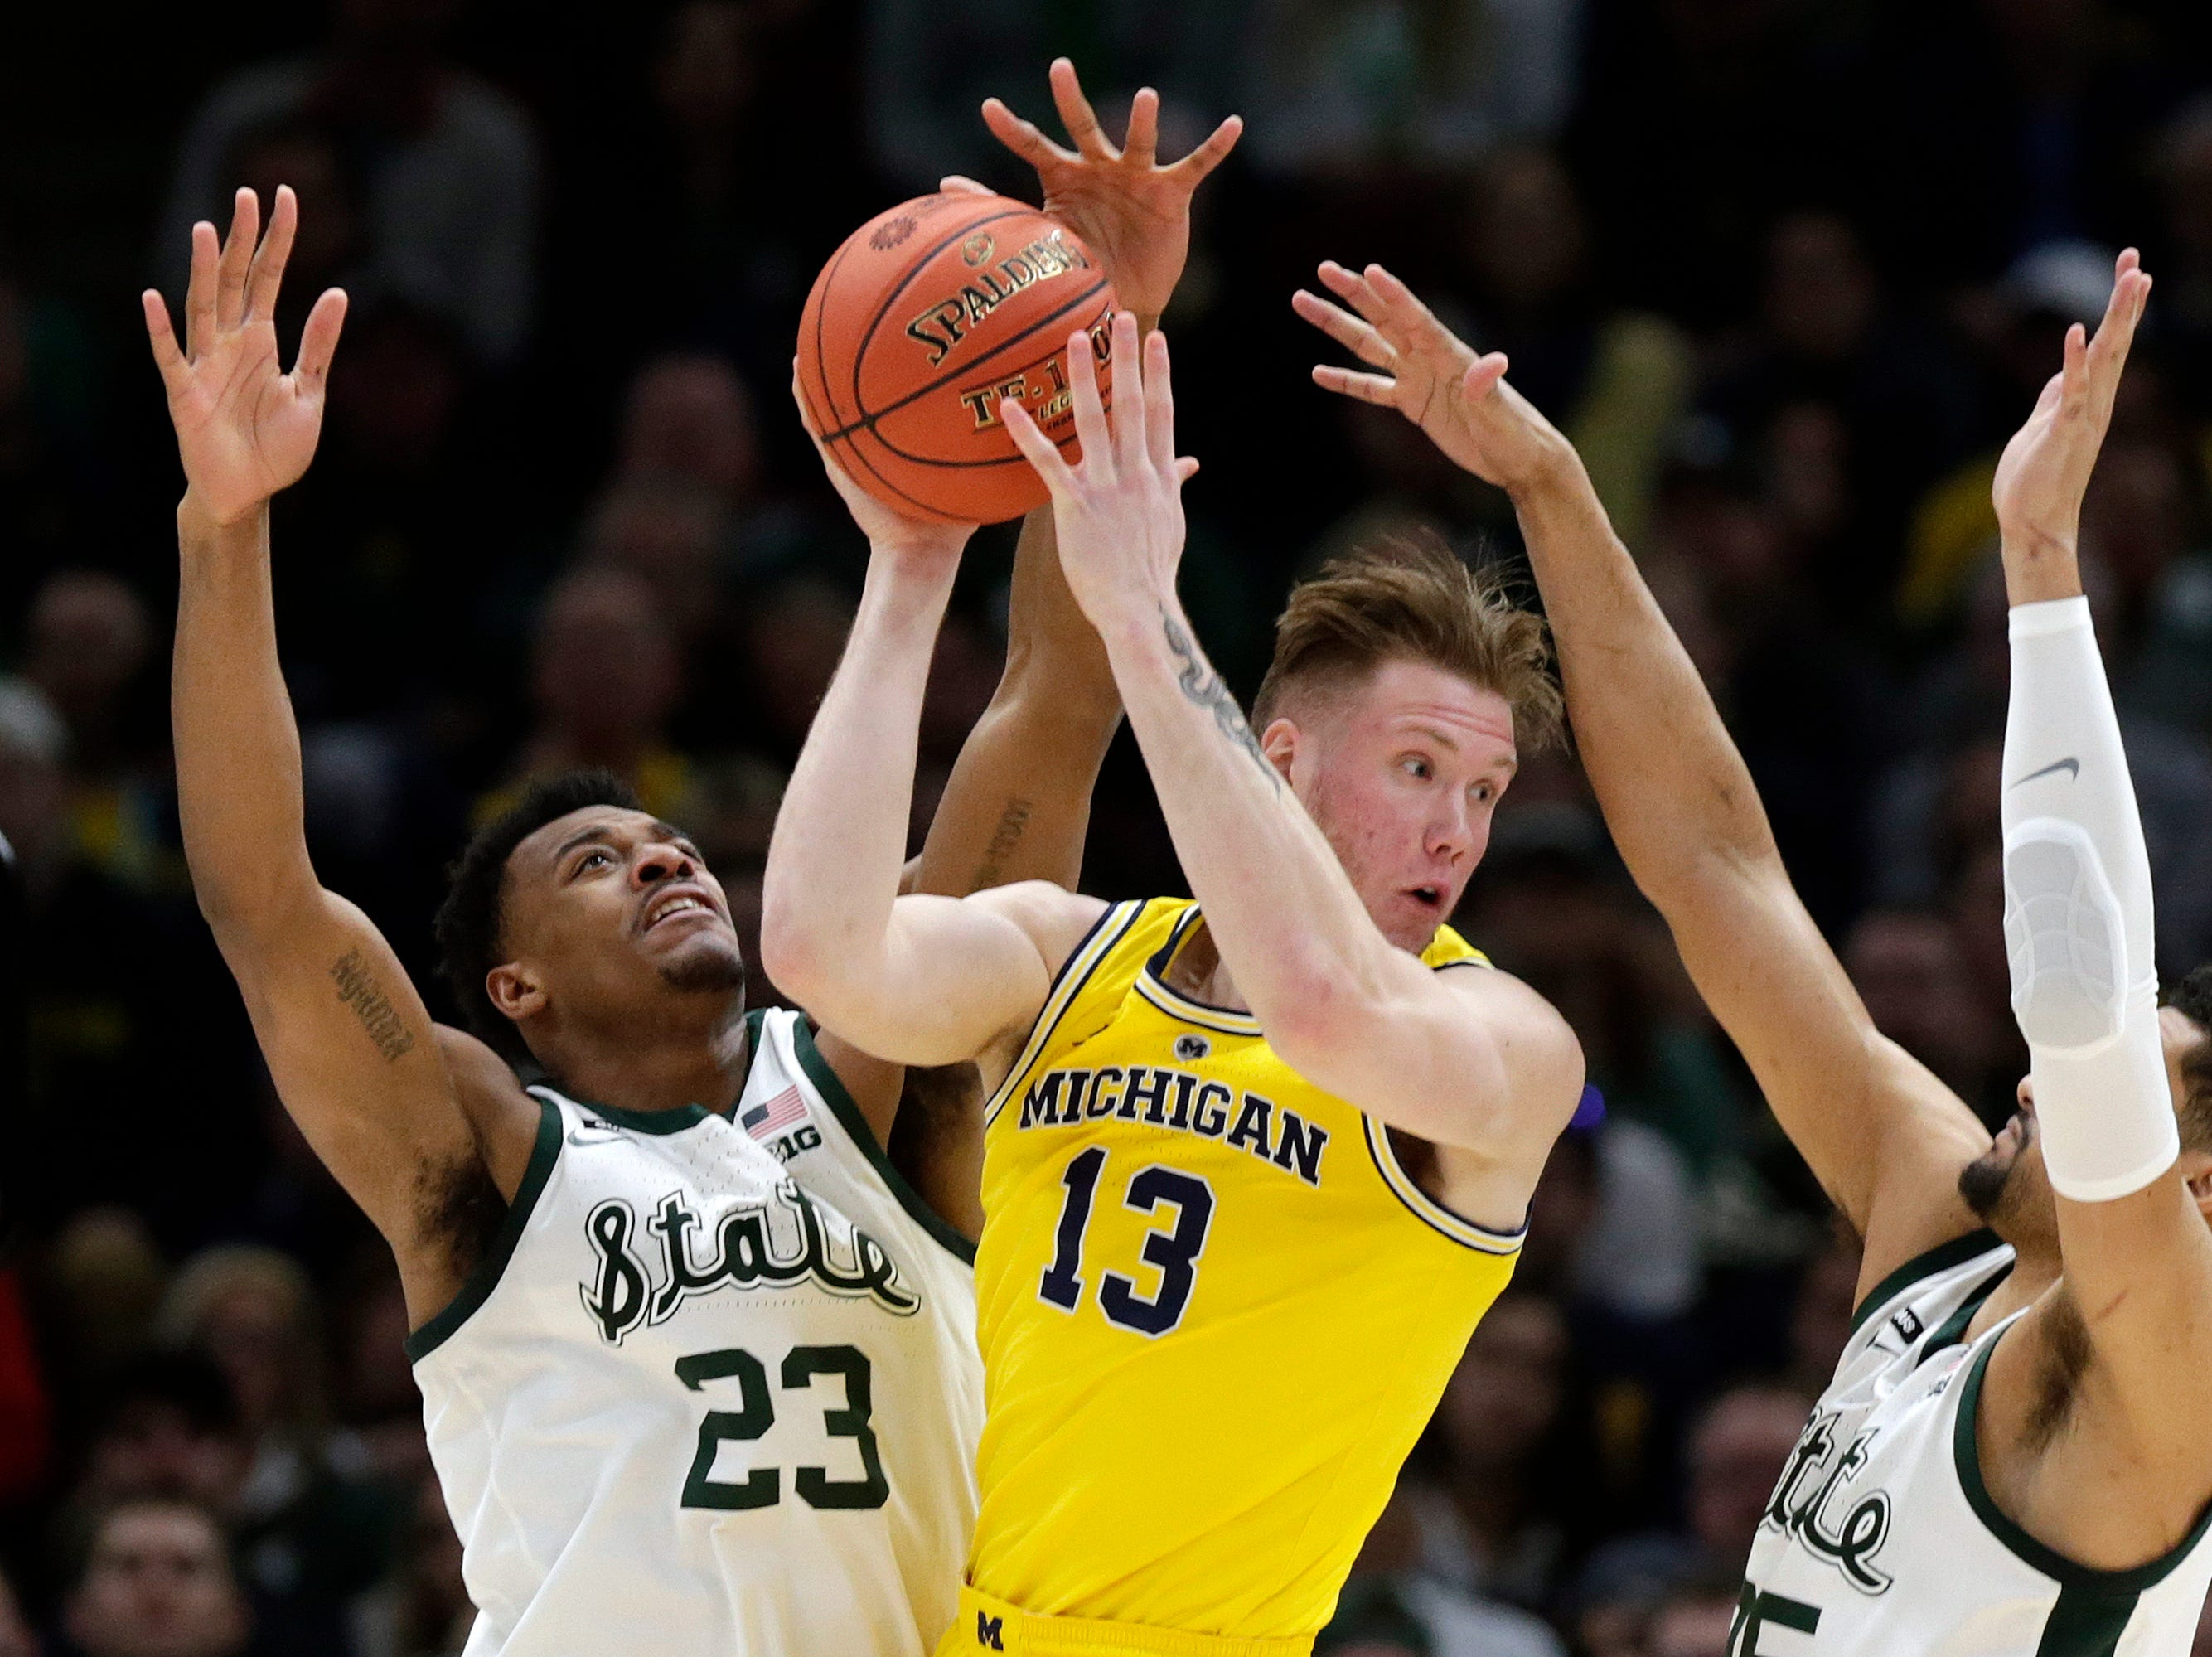 Michigan's Ignas Brazdeikis (13) looks to pass the ball against Michigan State's Xavier Tillman (23) and Kenny Goins (25) during the first half of an NCAA college basketball championship game in the Big Ten Conference tournament, Sunday, March 17, 2019, in Chicago.